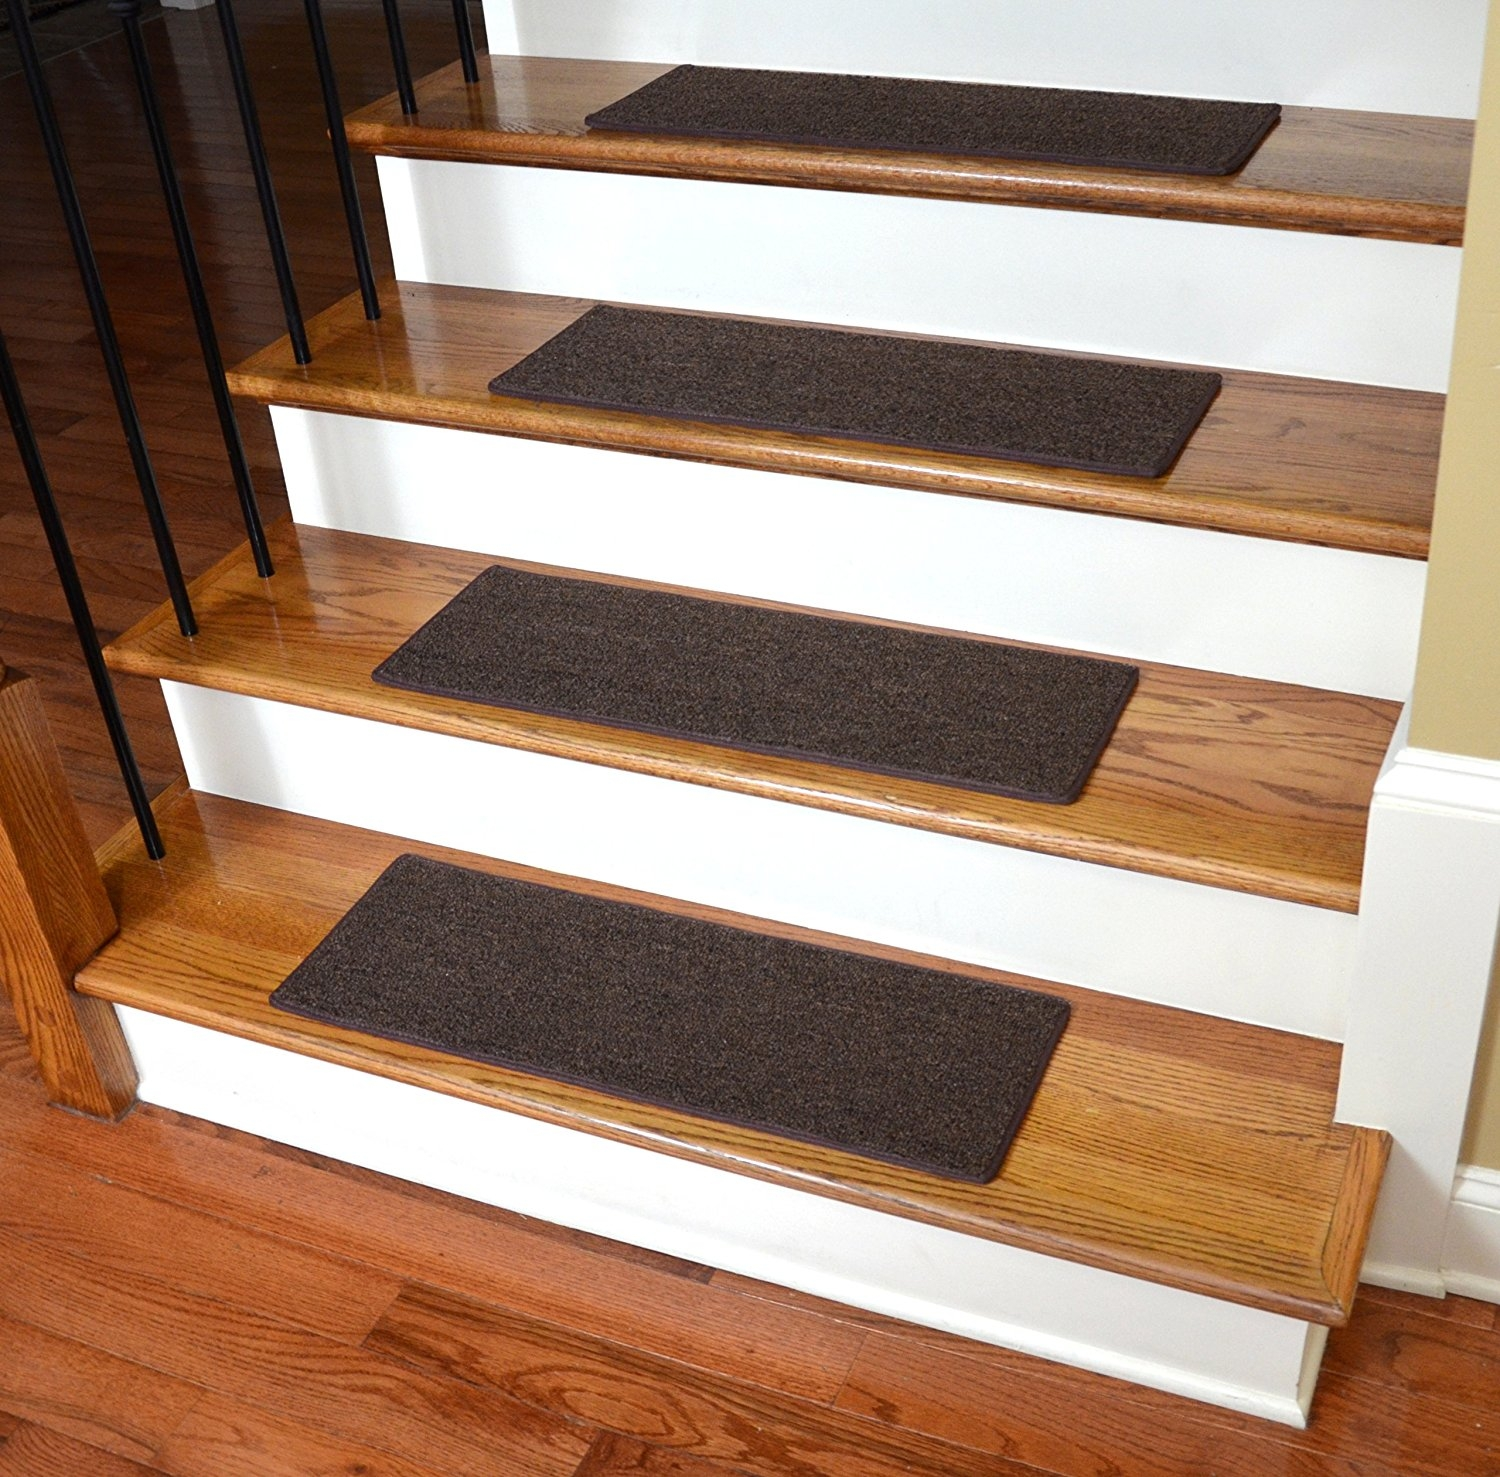 Dean Non Slip Tape Free Pet Friendly Diy Carpet Stair Treadsrugs Pertaining To Diy Stair Tread Rugs (#9 of 20)